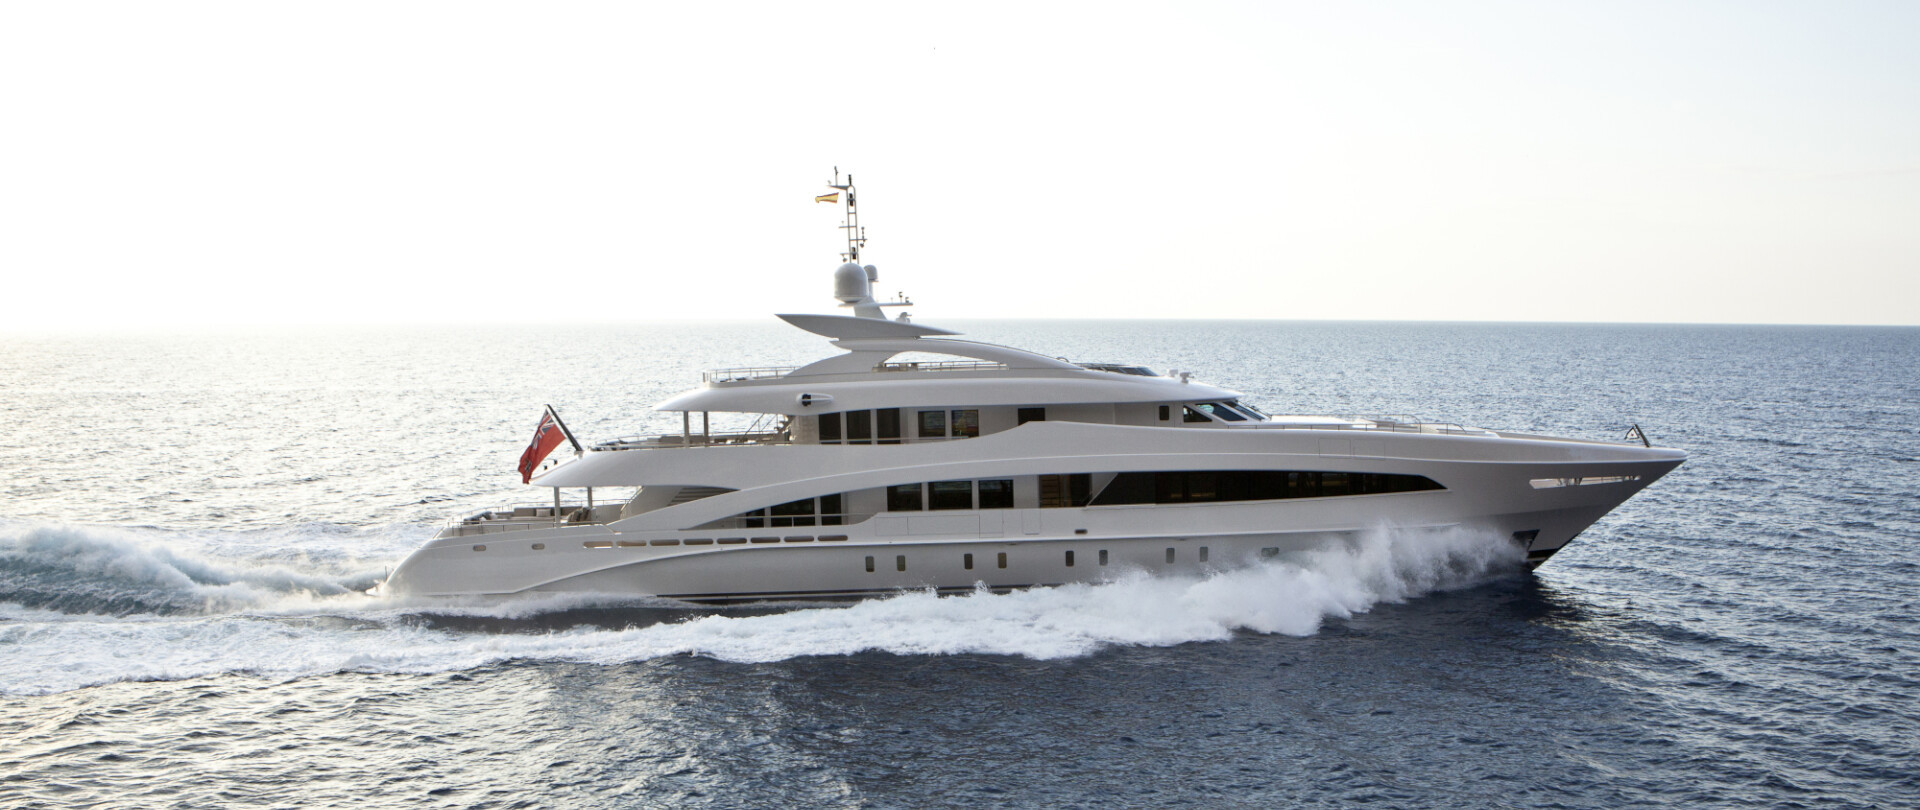 Yacht sold, Septimus photo 1